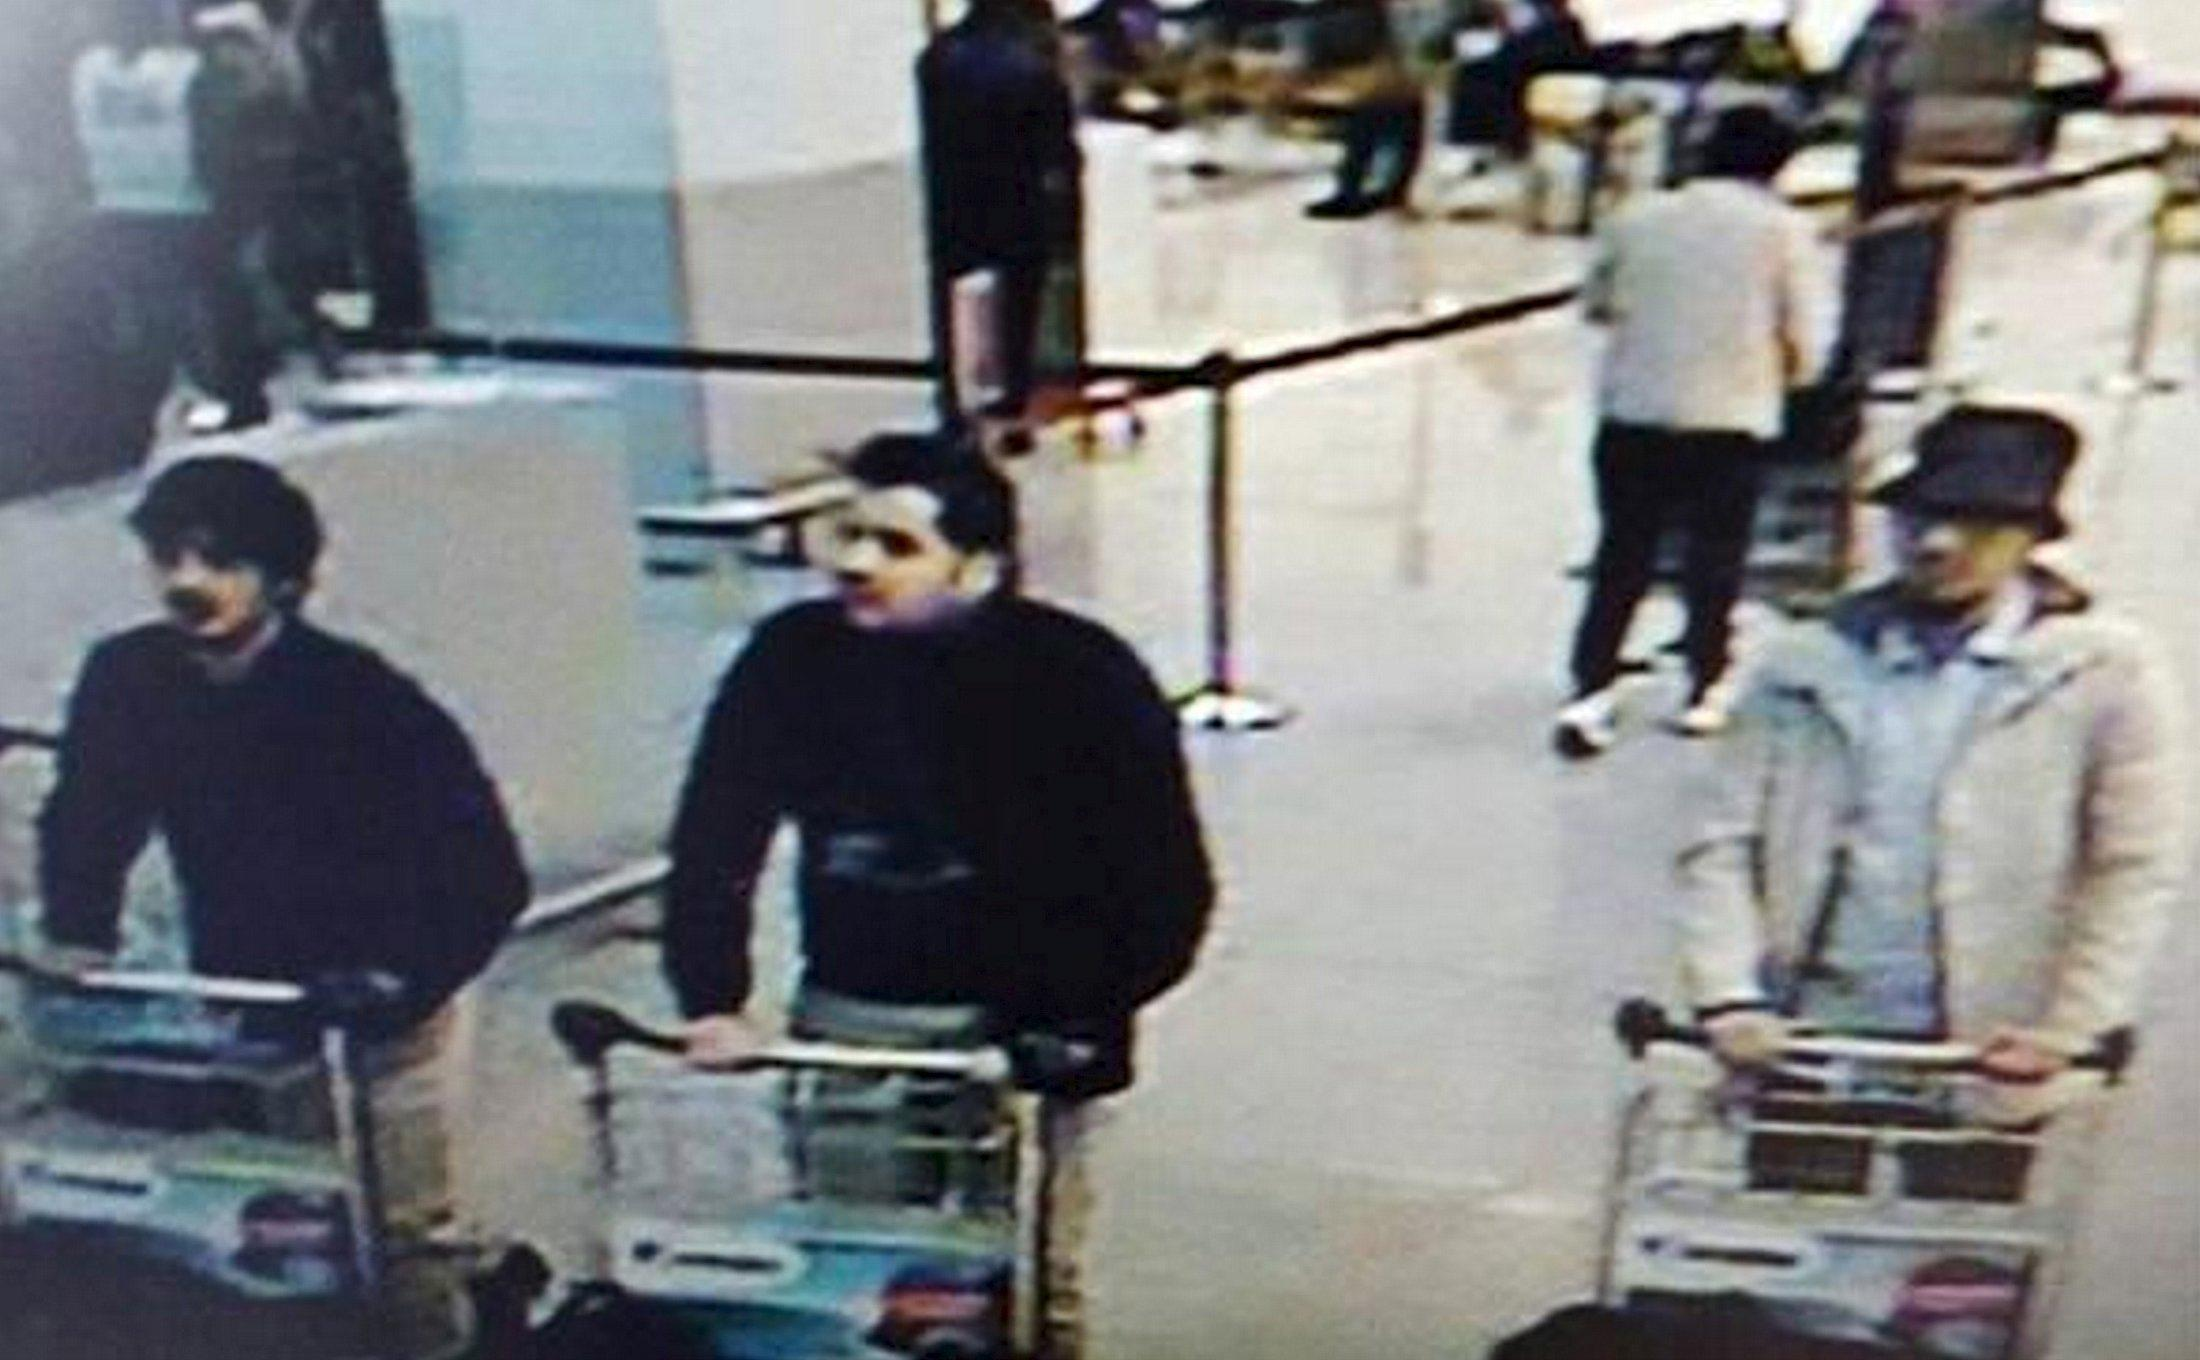 """This CCTV image from the Brussels Airport surveillance cameras made available by Belgian Police, shows what officials believe may be suspects in the Brussels airport attack on March 22, 2016. The Belgian state prosecutor said in a press conference on Tuesday, that a photograph of three male suspects was taken at Zaventem. """"Two of them seem to have committed suicide attacks. The third, wearing a light-coloured jacket and a hat, is actively being sought,"""" the prosecutor said. REUTERS/CCTV/Handout via ReutersATTENTION EDITORS - THIS PICTURE WAS PROVIDED BY A THIRD PARTY. REUTERS IS UNABLE TO INDEPENDENTLY VERIFY THE AUTHENTICITY, CONTENT, LOCATION OR DATE OF THIS IMAGE. EDITORIAL USE ONLY. NOT FOR SALE FOR MARKETING OR ADVERTISING CAMPAIGNS. NO RESALES. NO ARCHIVE. THIS PICTURE IS DISTRIBUTED EXACTLY AS RECEIVED BY REUTERS, AS A SERVICE TO CLIENTS TPX IMAGES OF THE DAY"""